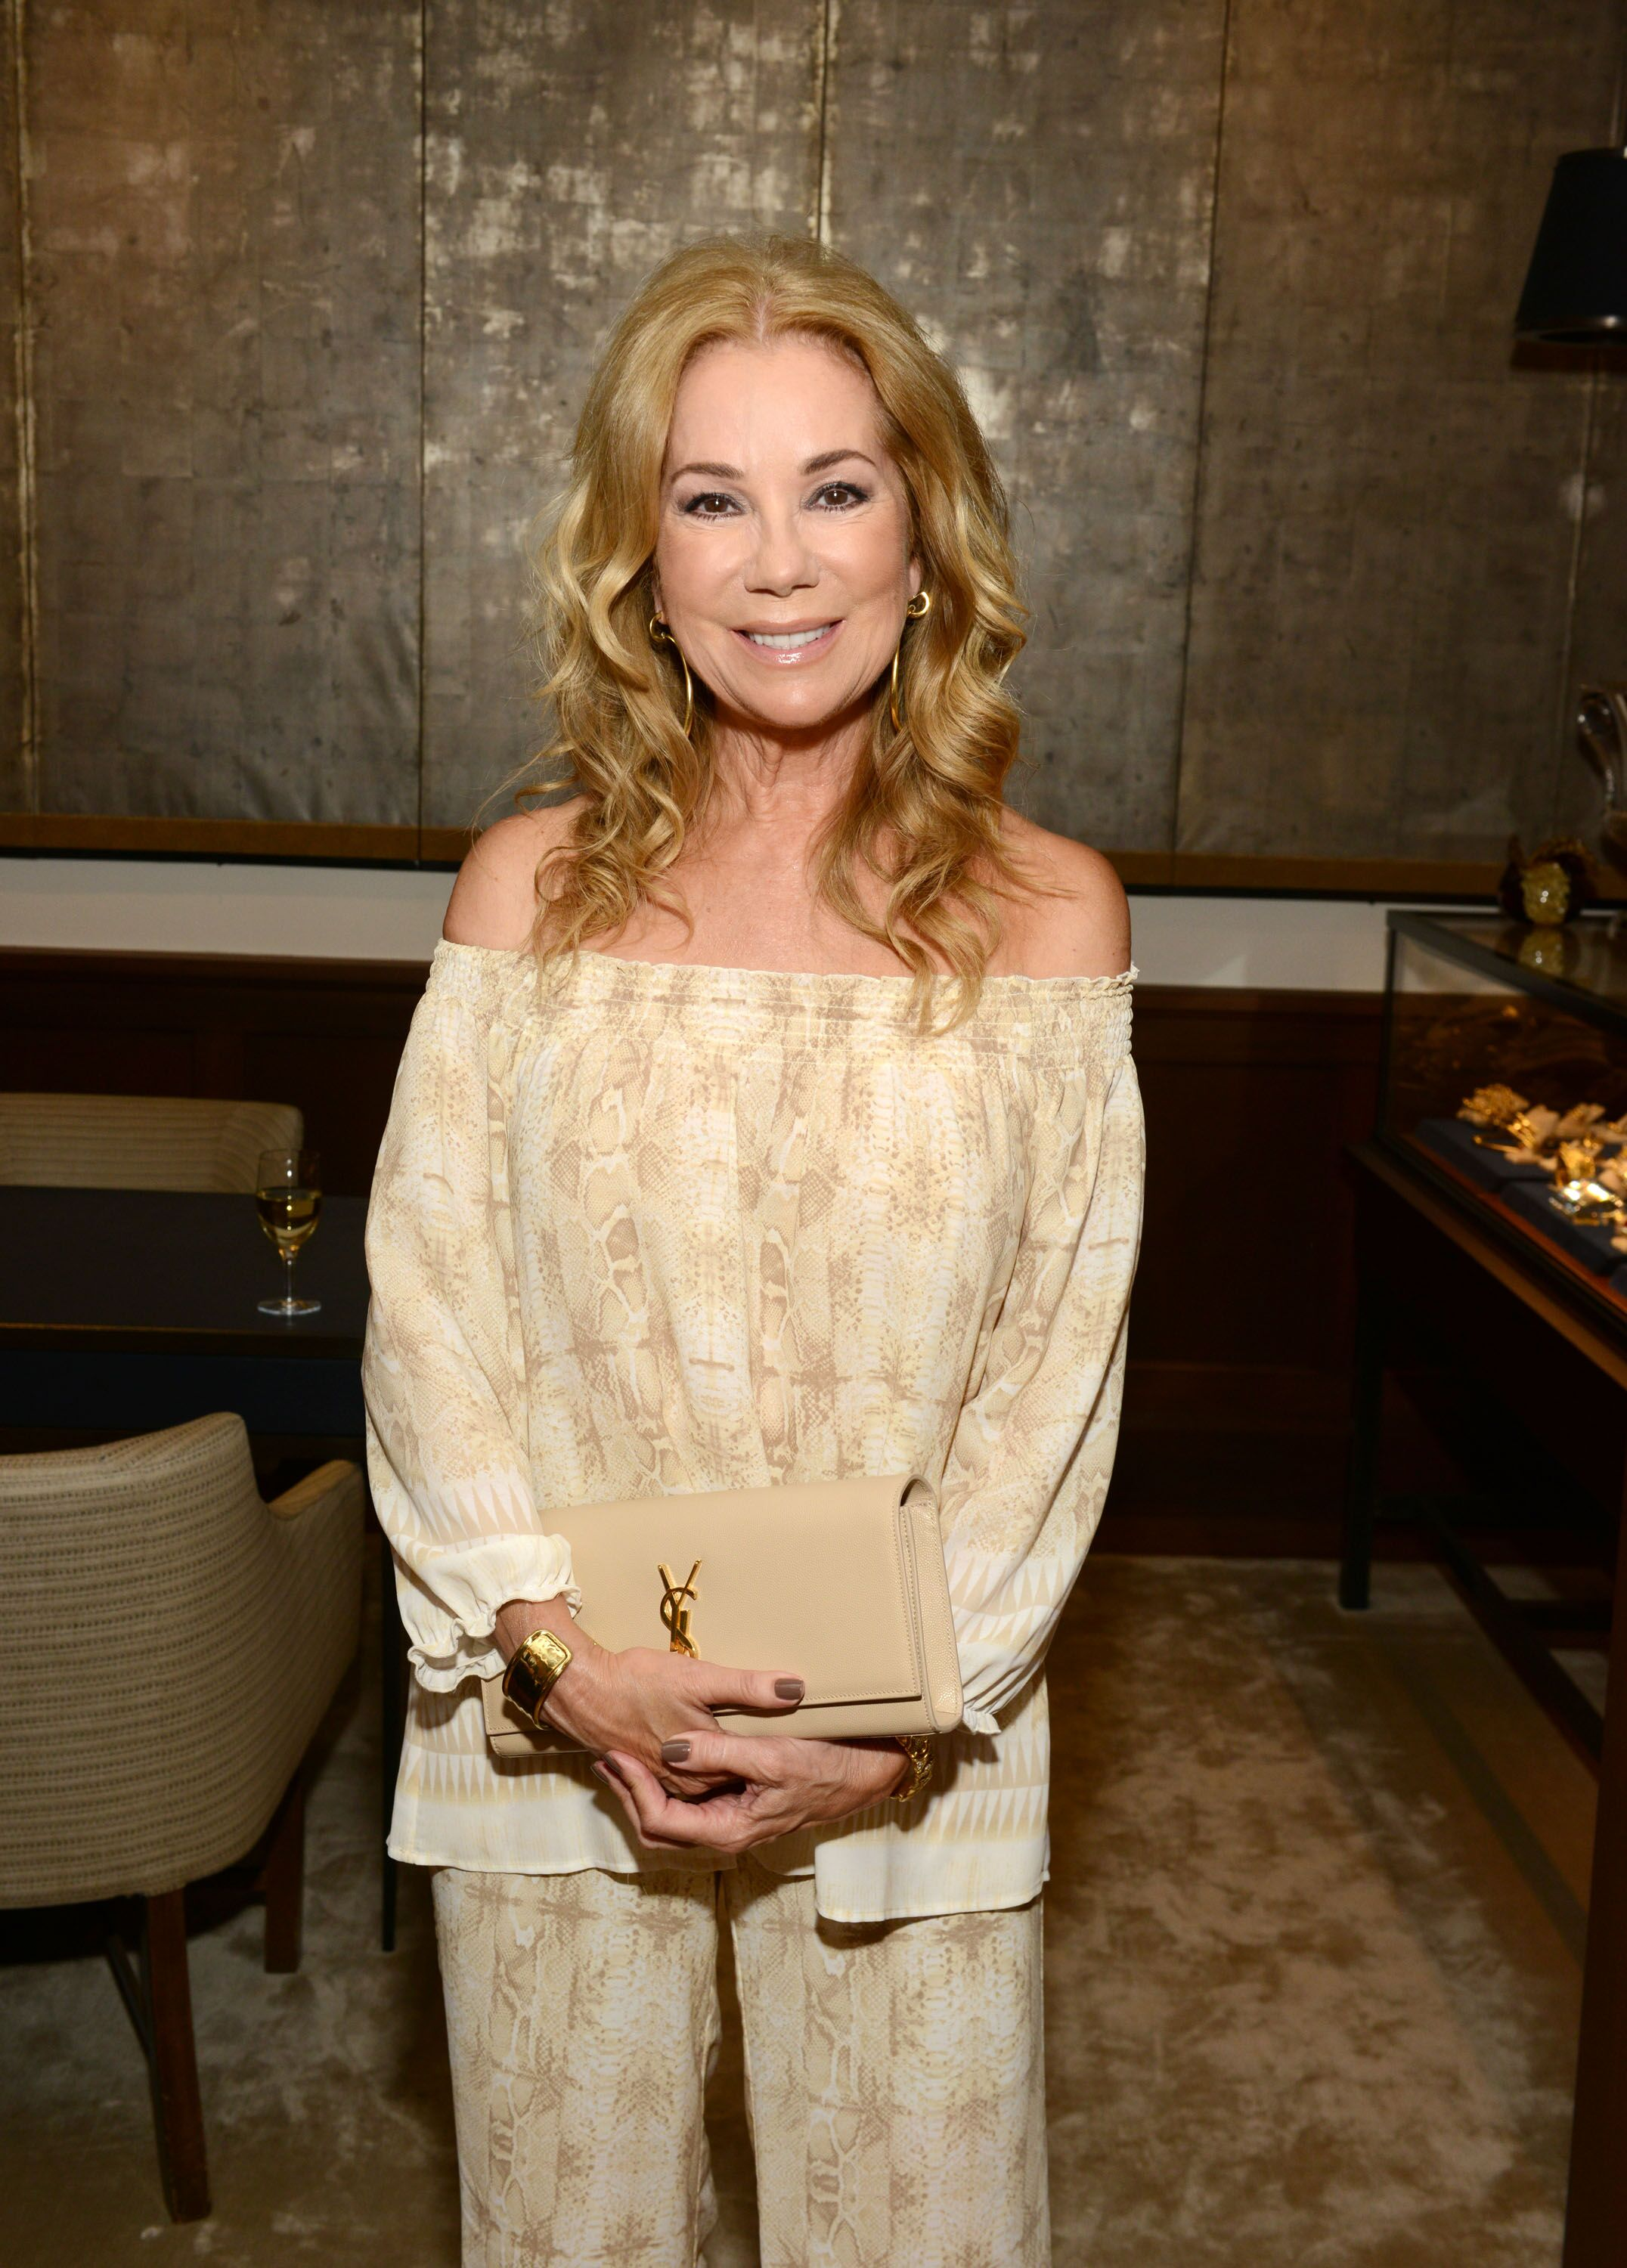 Kathie Lee Gifford at the Changemaker cocktail reception on June 10, 2016, in Connecticut | Photo: Getty Images